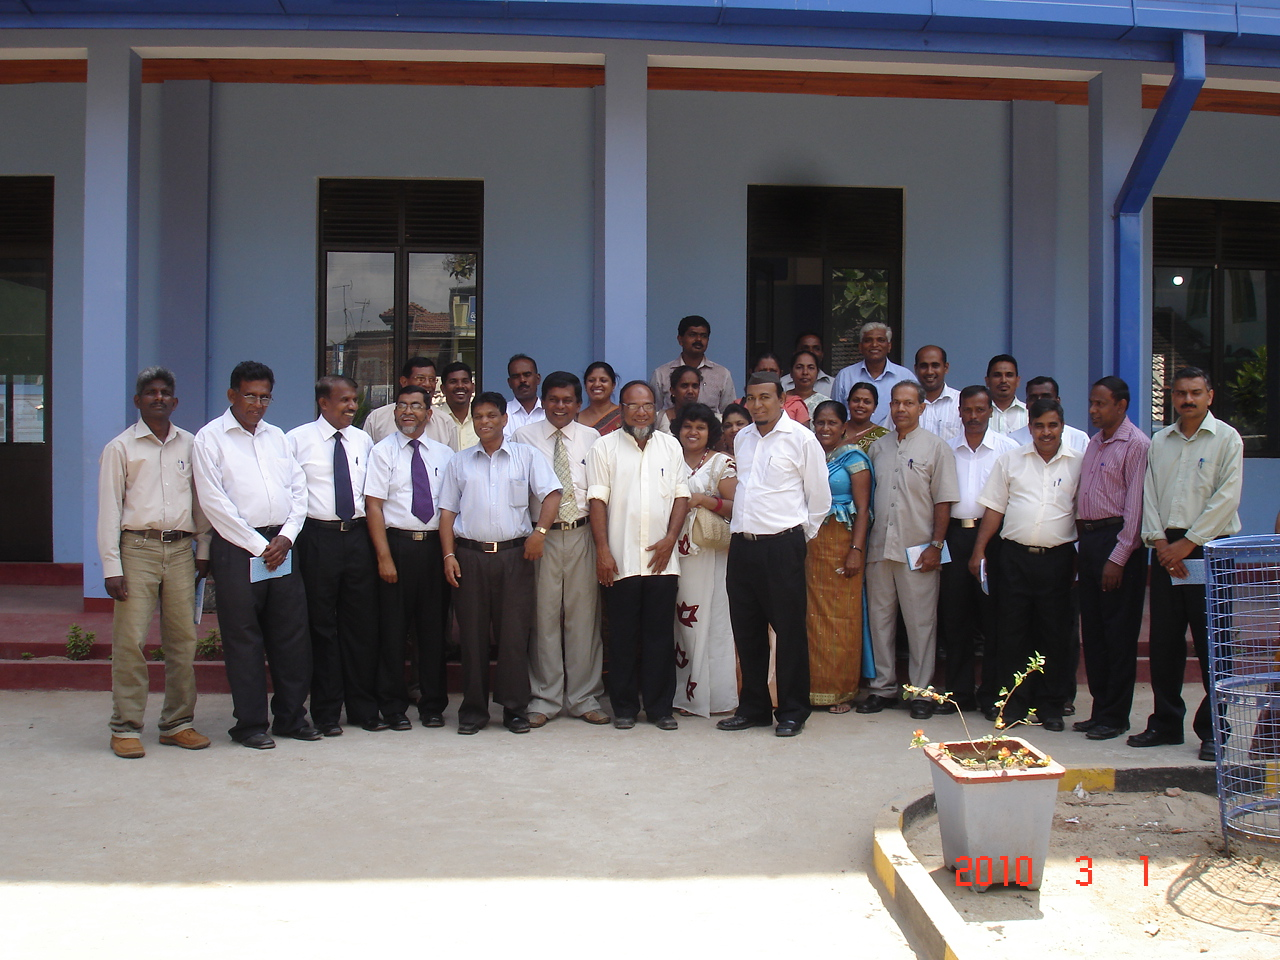 You are browsing images from the article: Unicef School visit - Batticaloa